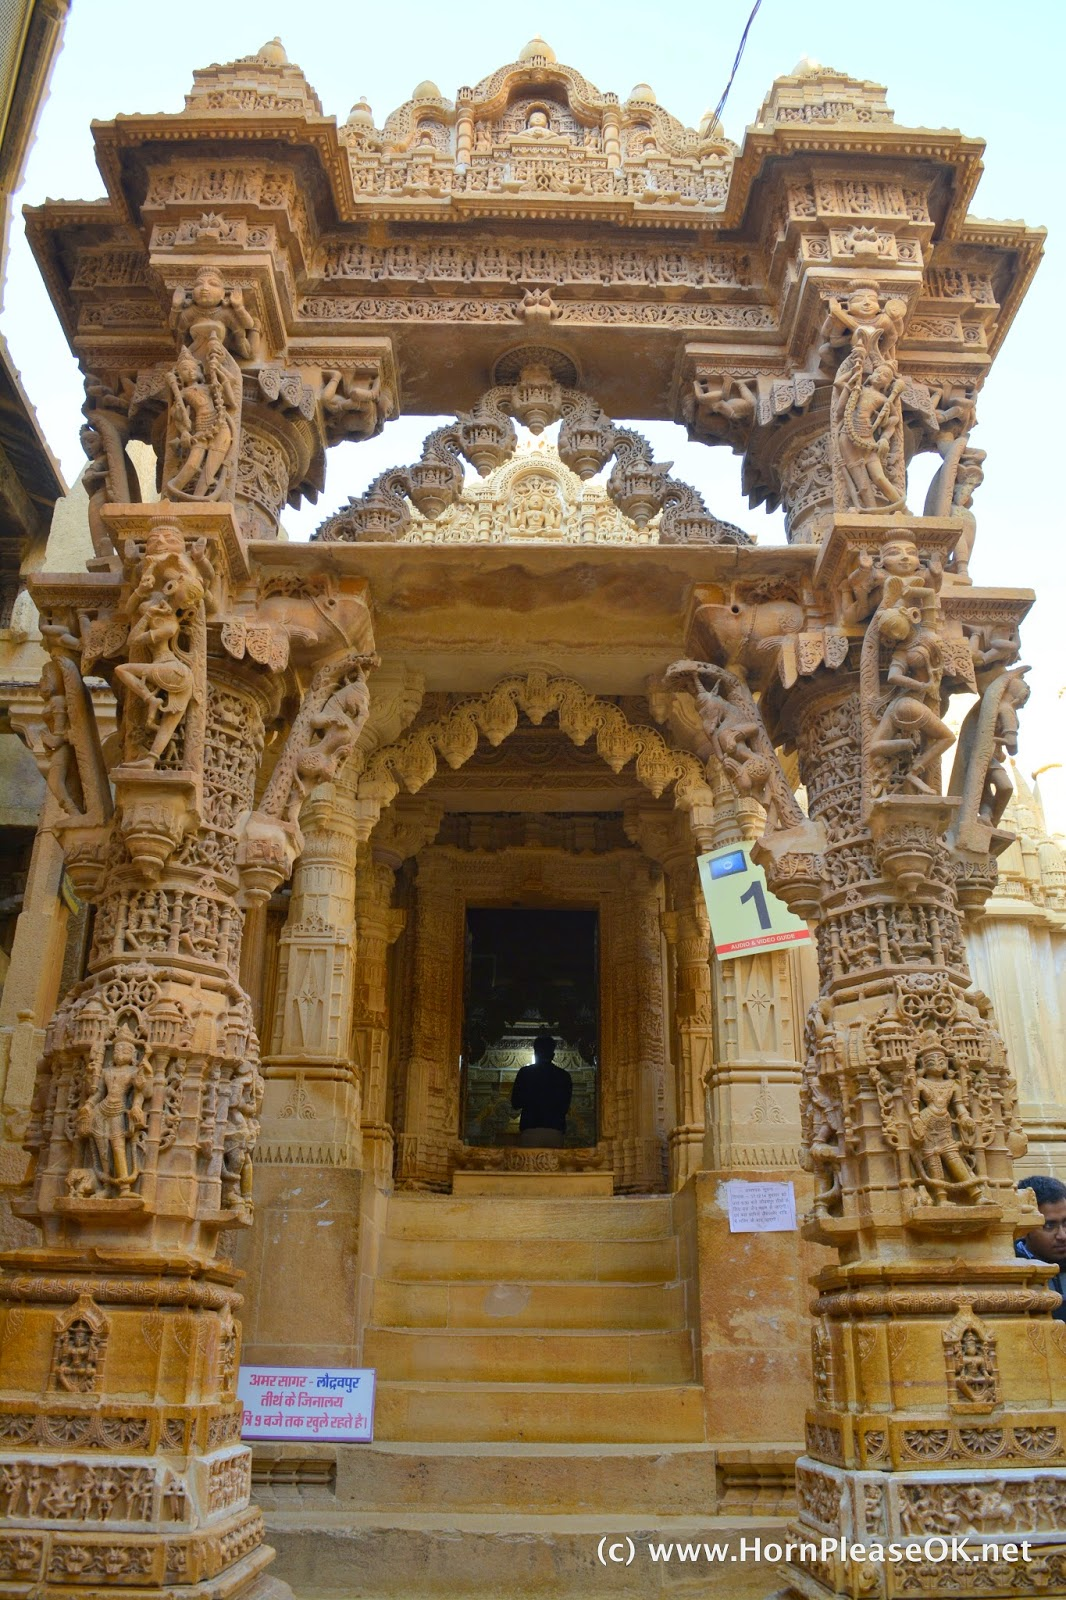 Entrance arch (Toran) leading in to Parasvnath temple inside Jaisalmer Fort